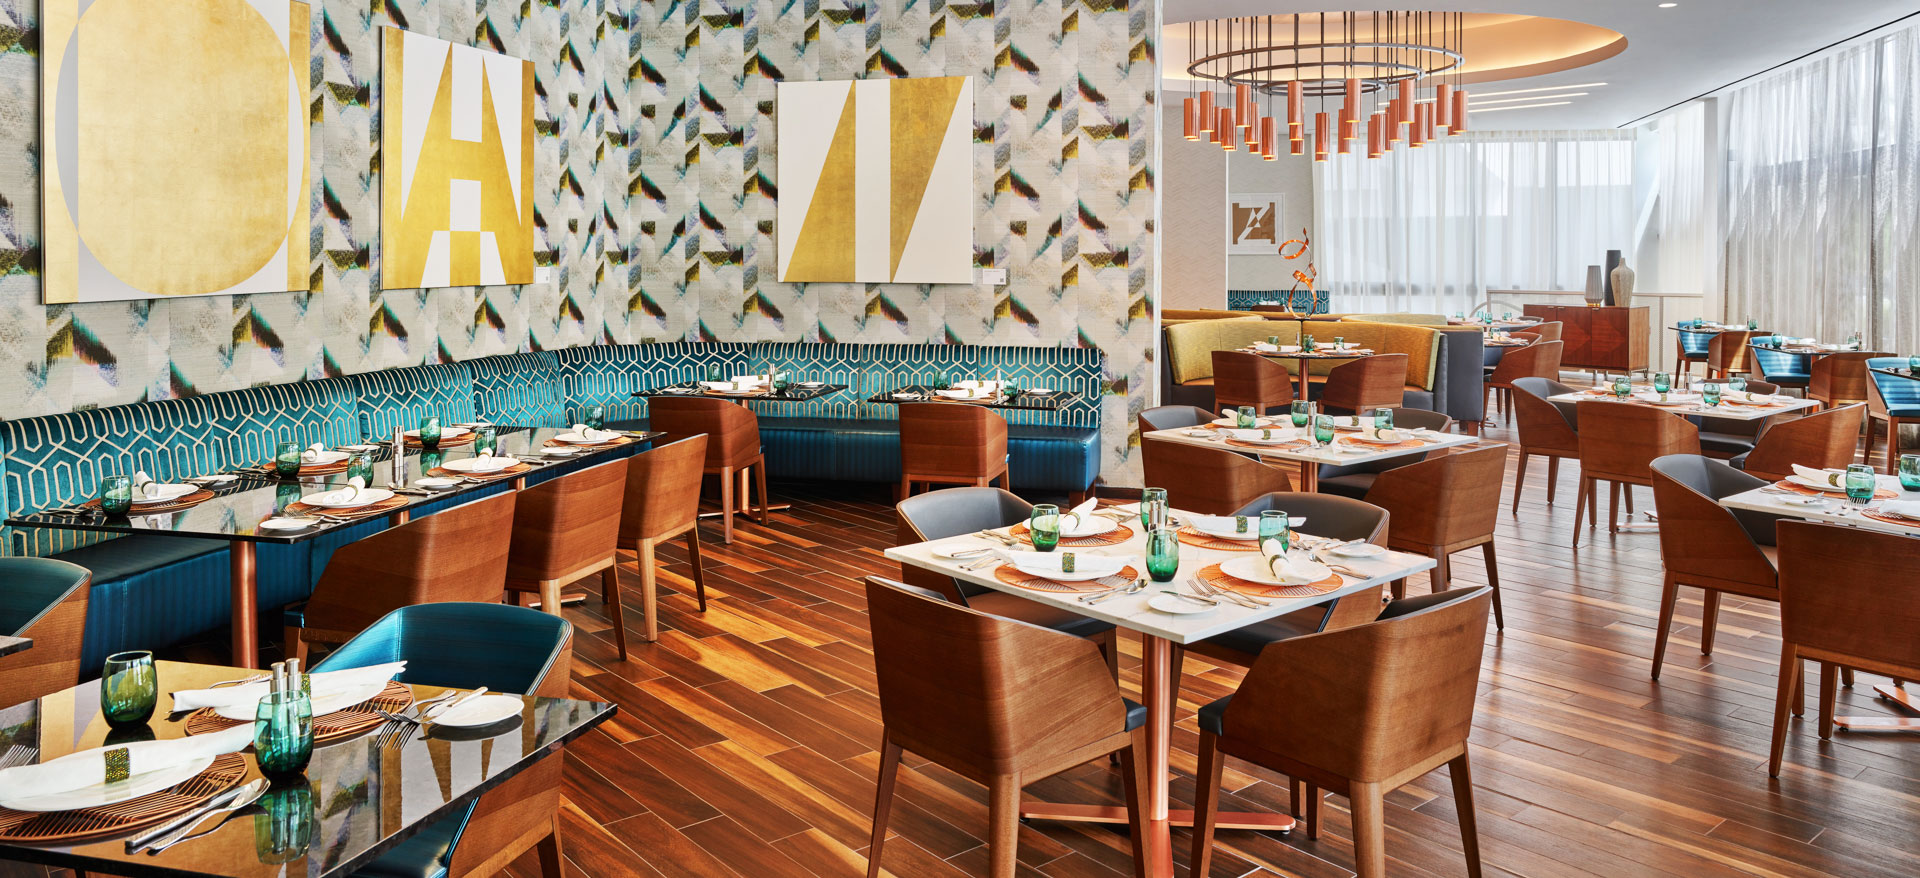 Overture Restaurant of Art Ovation Hotel, Autograph Collection at Sarasota, Florida